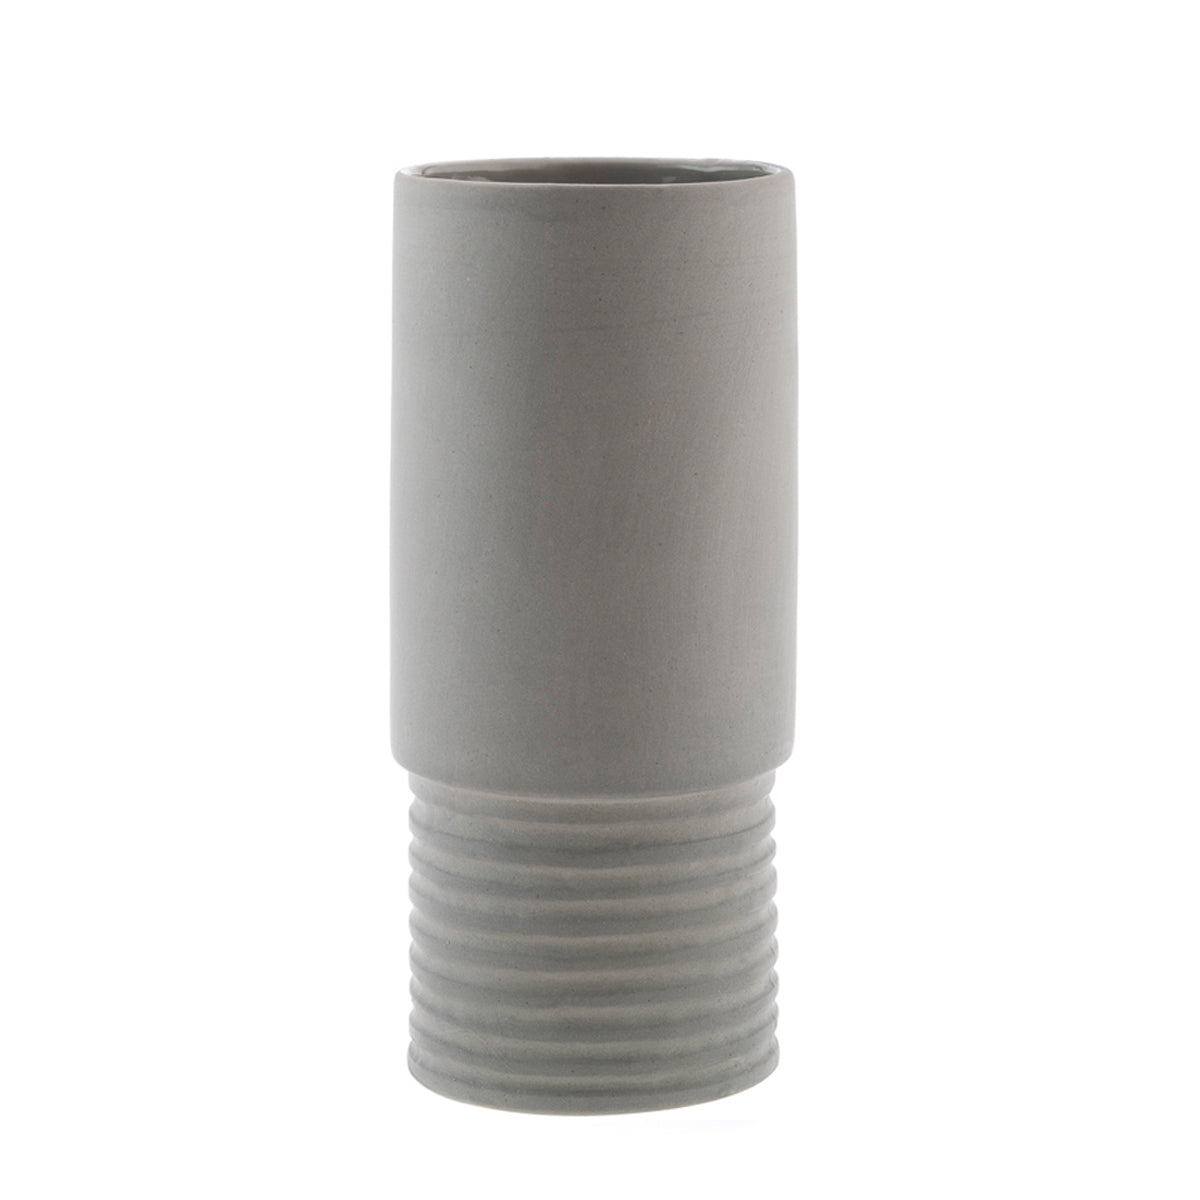 Tall Vase Small- Grey